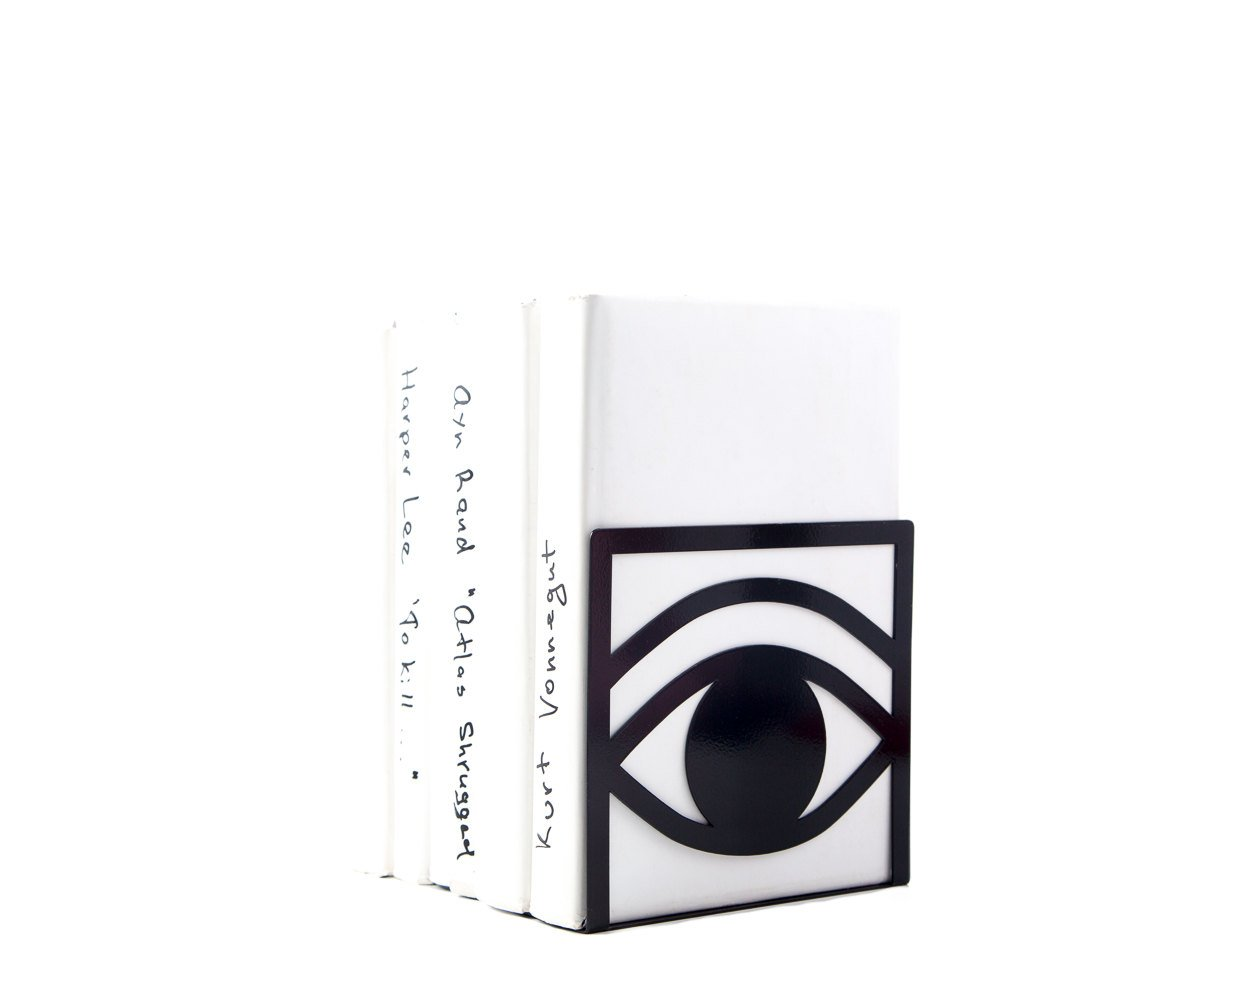 A pair of unique bookends Eys One Eye Closed One Eye opened // black // decorative book holder for modern home // FREE SHIPPING WORLDWIDE